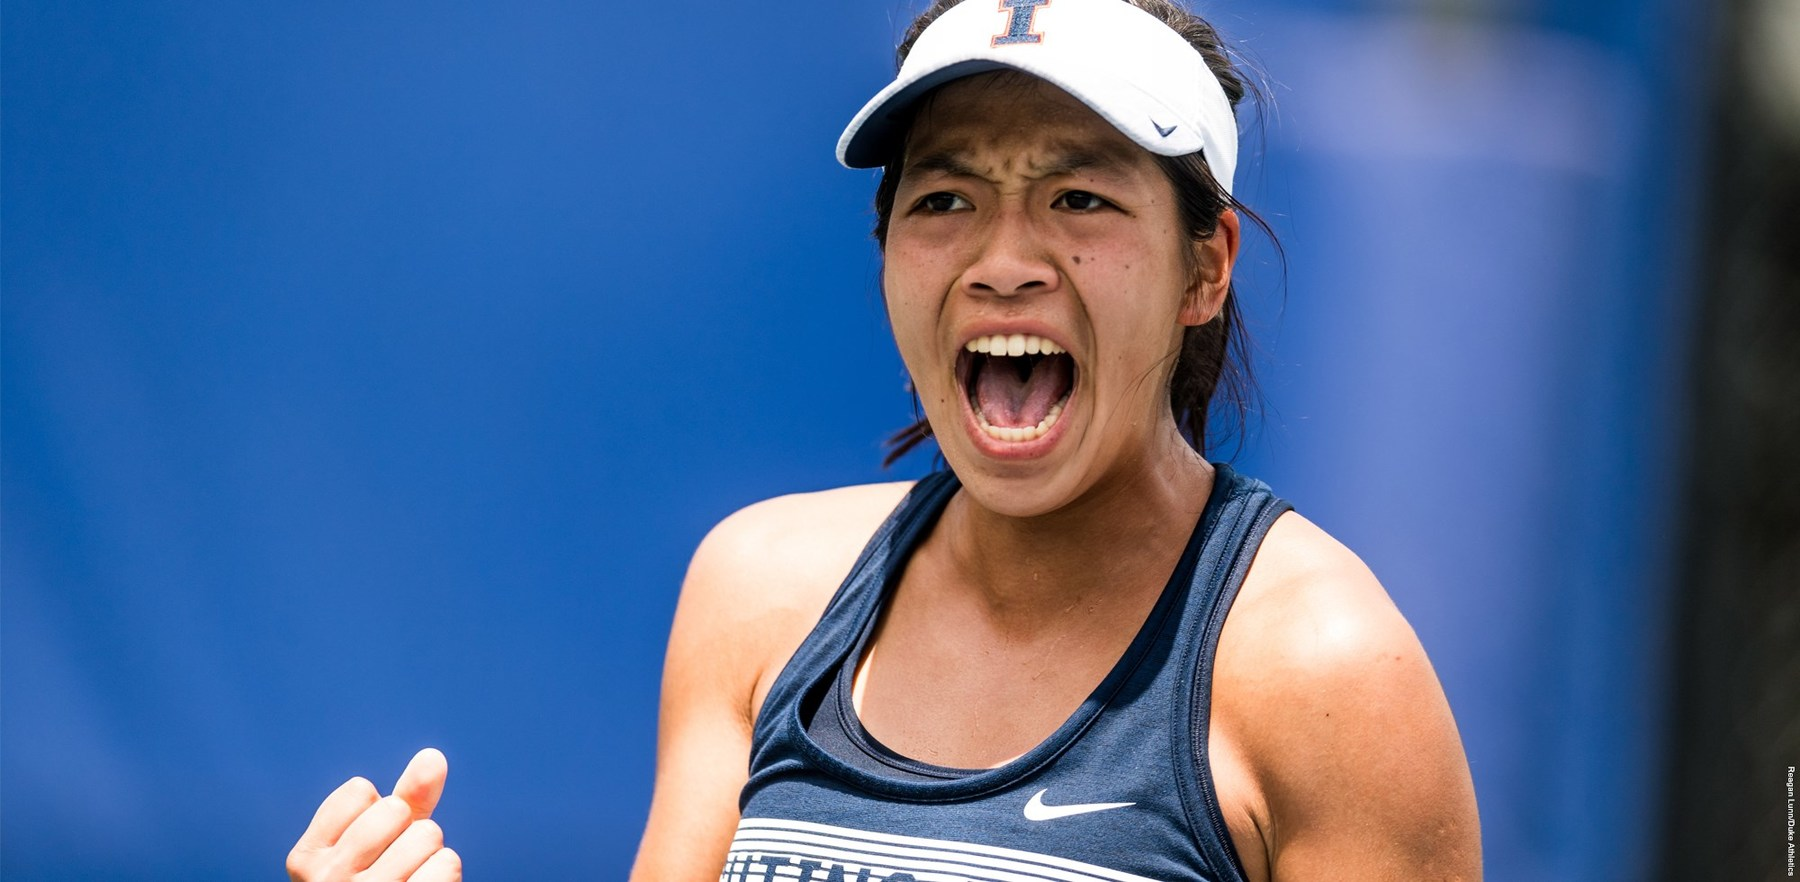 Women's tennis star Asuka Kawai shouts in celebration during a match